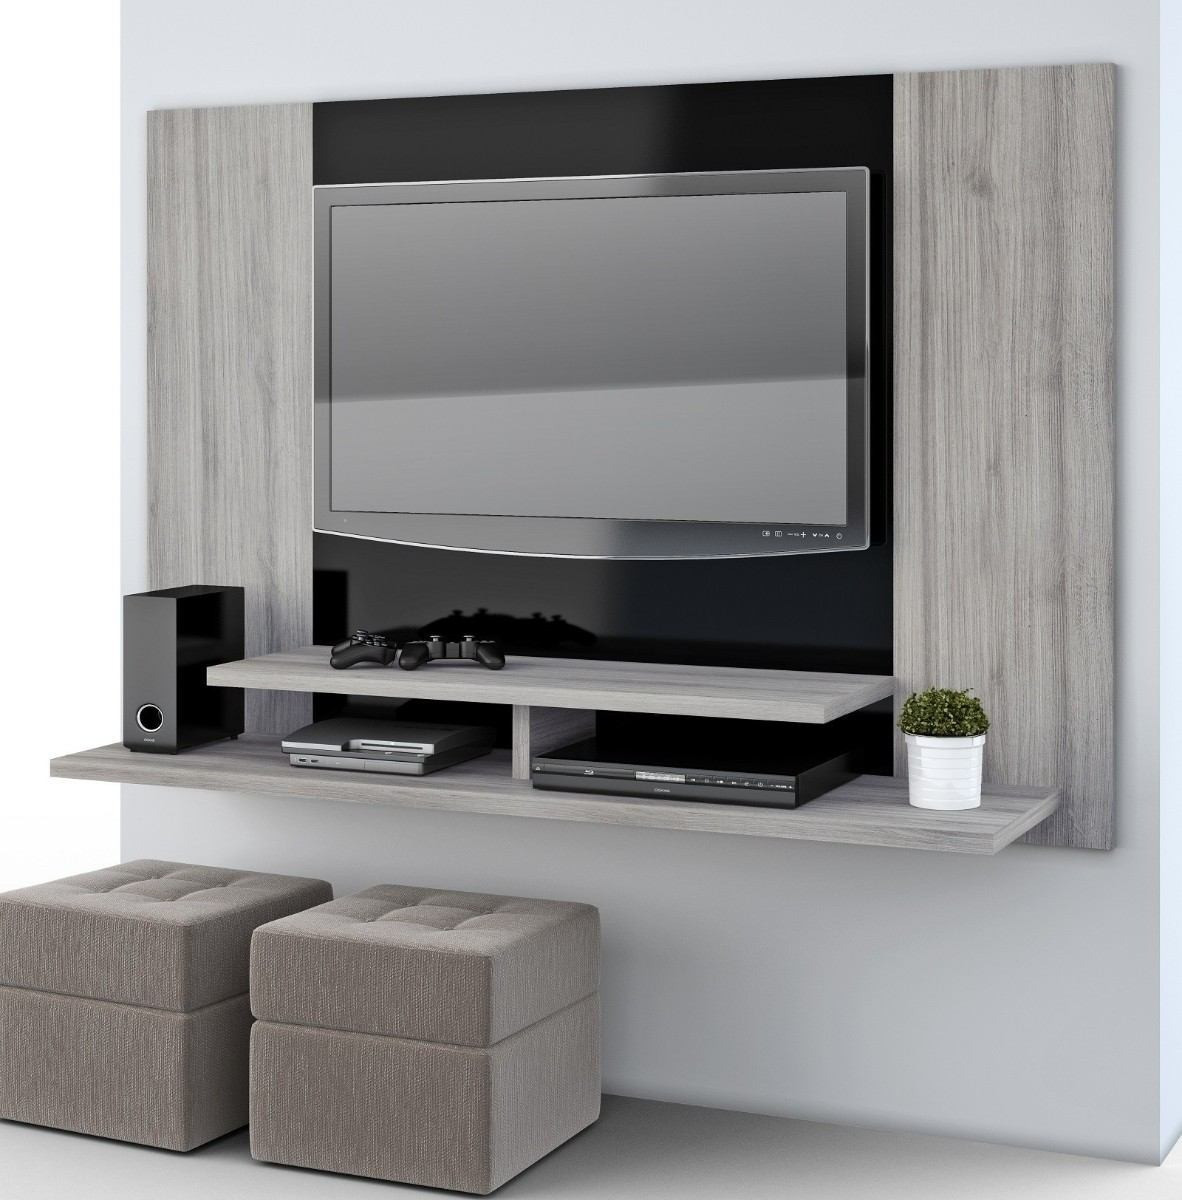 Muebles Para Tv Modernos Innovador Mueble Flotante Para Tv Moderno Ref Manhatan $ 430 000 Of Muebles Para Tv Modernos Magnífica 25 Best Ideas About Lcd Wall Design On Pinterest